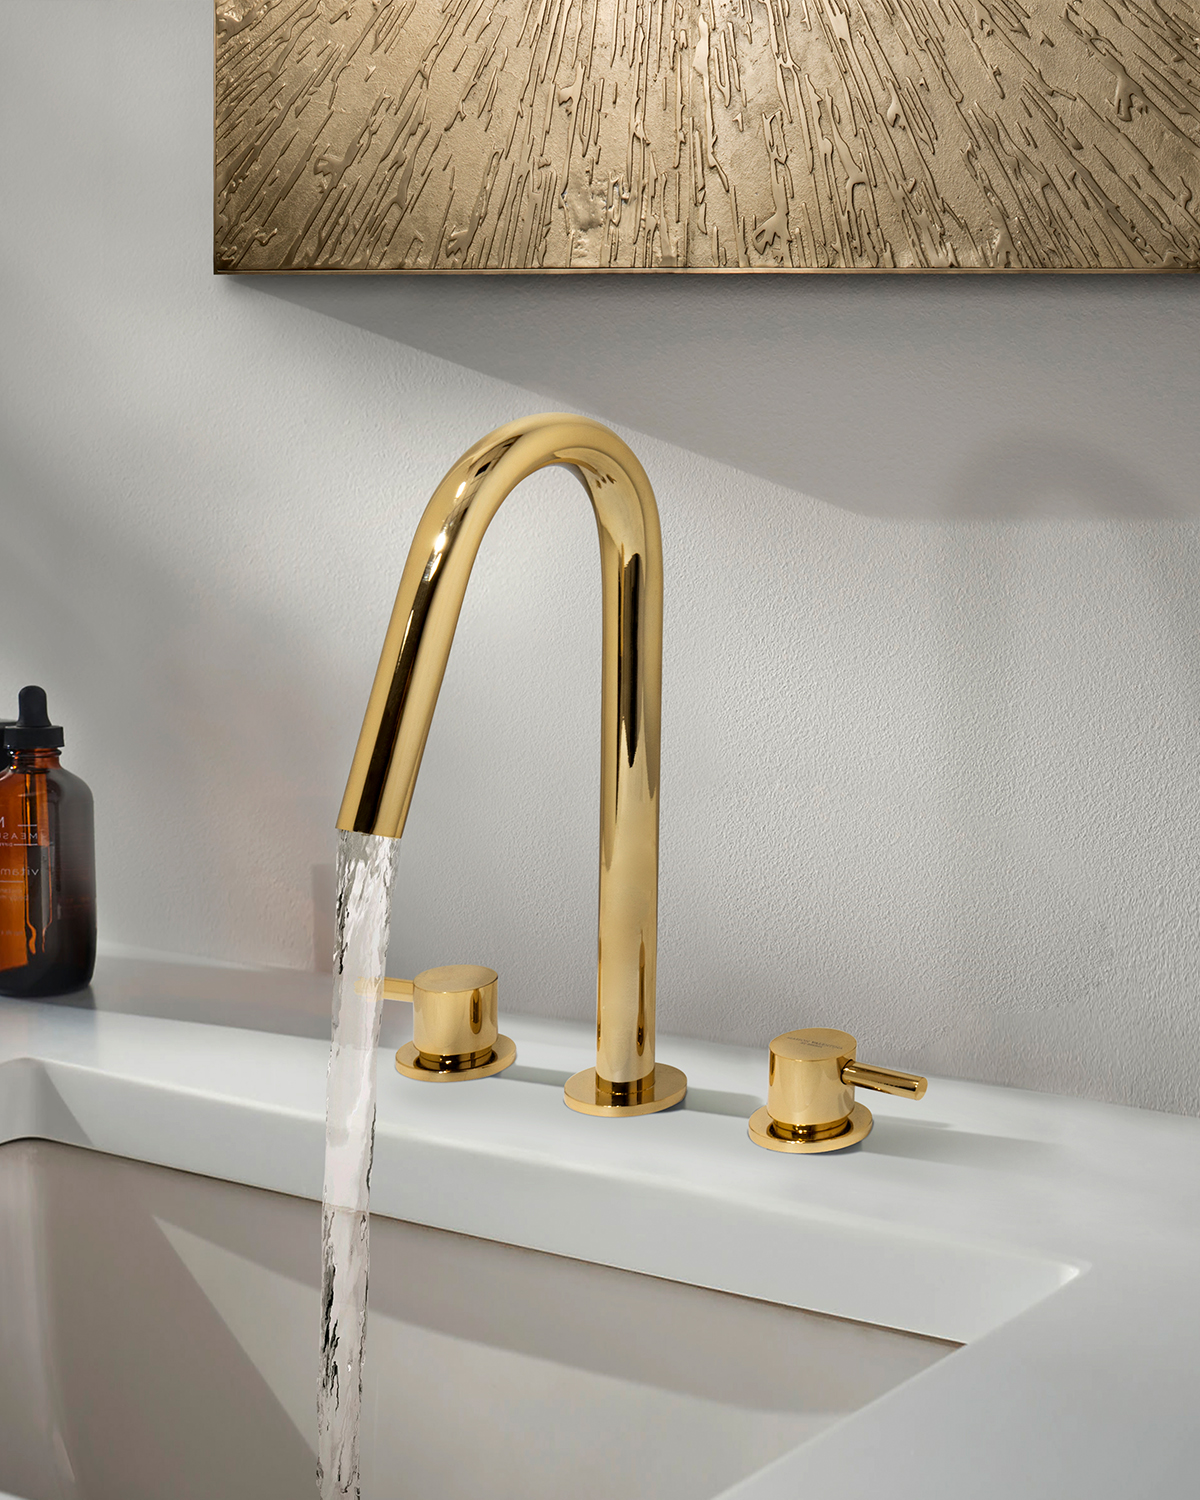 Bath Design Awards, Architectural Digest, Maison Valentina, Bathroom, interior design architectural digest Best of 2019: Great Bath Design Awards by Architectural Digest Fabulous Taps